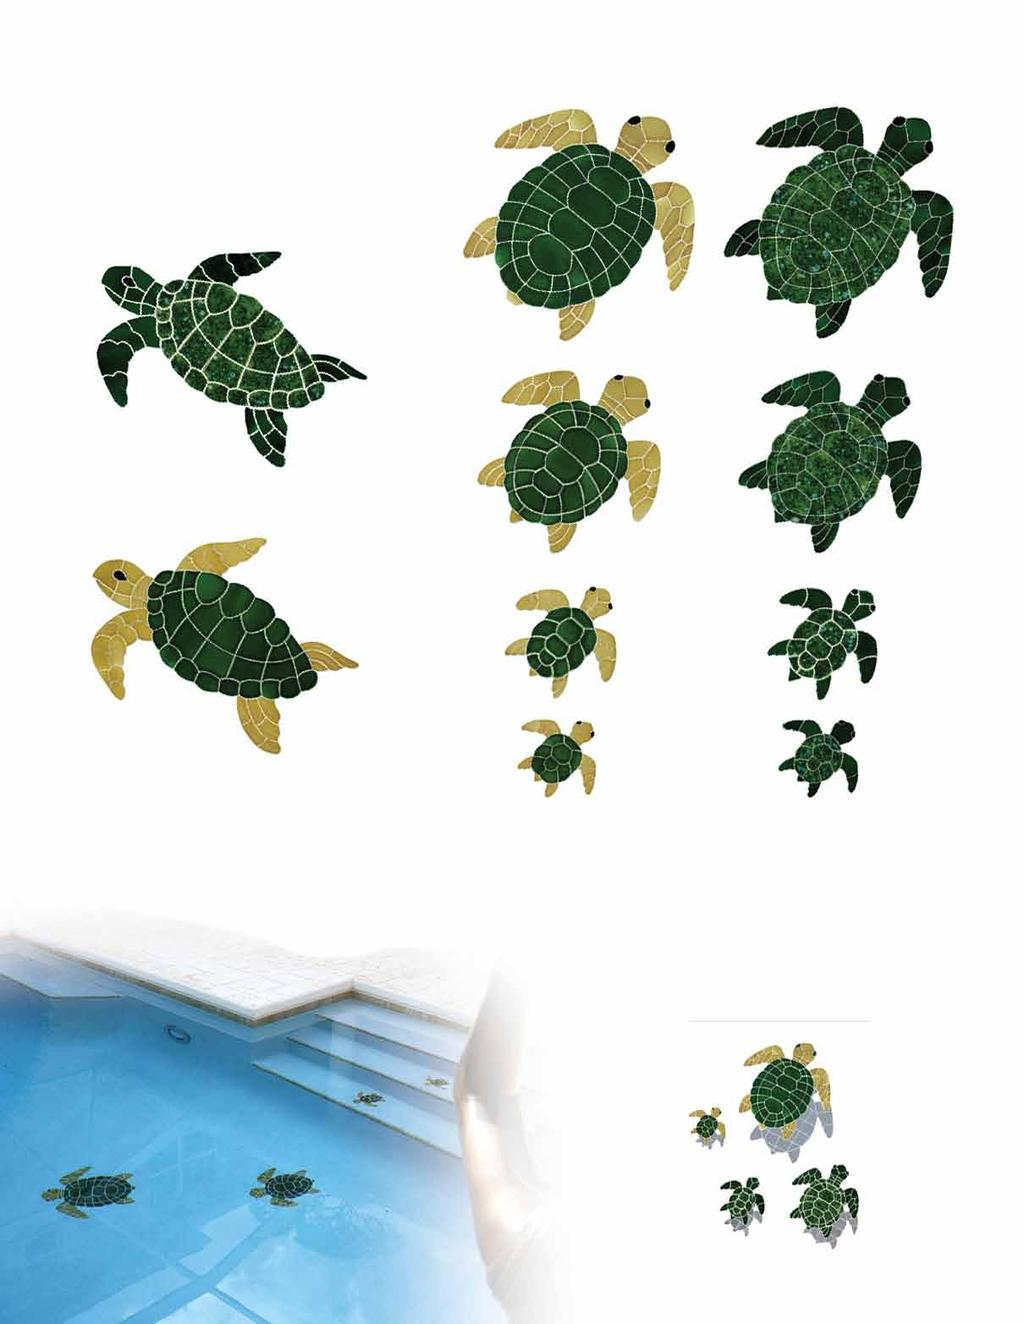 "Classic Turtles & Dolphins Turtle Sideview Green 19 "" x 24"" TURGRESL 13"" x 16"" TURGRESM 7"" x 9"" TURGRESS Turtle Sideview Natural 19 "" x 24"" TURNATSL 13"" x 16"" TURNATSM 7"" x 9"" TURNATSS Turtle Topview"